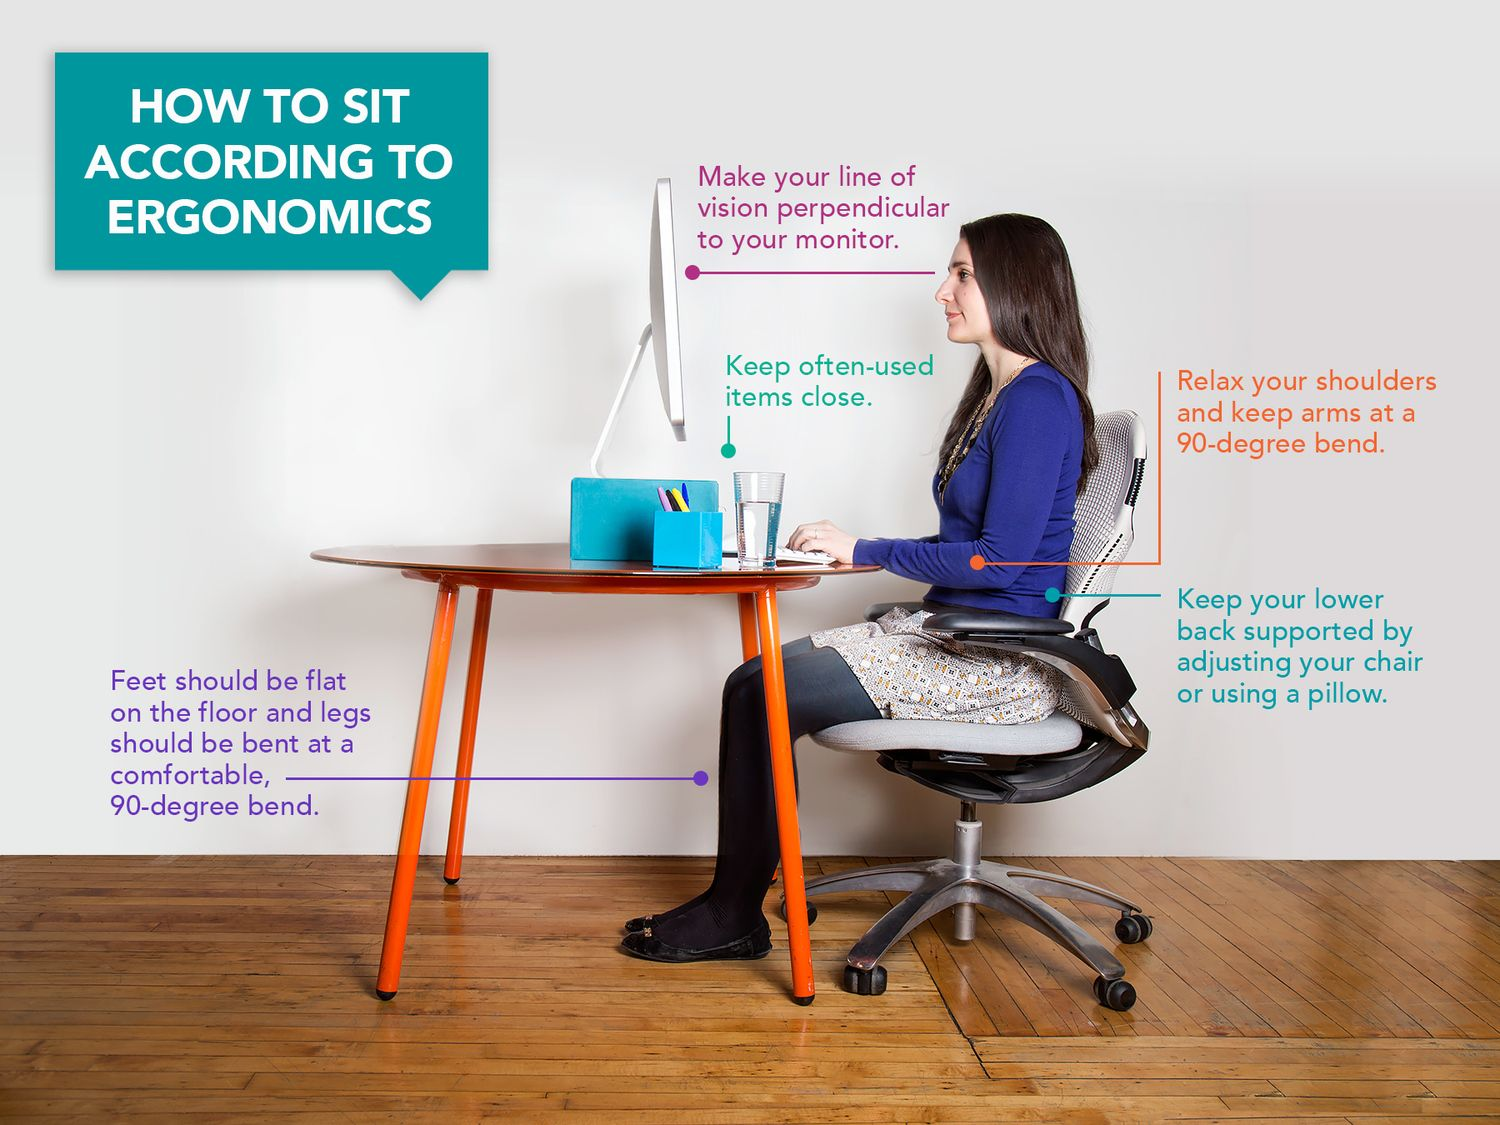 ergonomic chair keyboard position best sleeper chairs 2017 heres how you should be sitting at your desk according